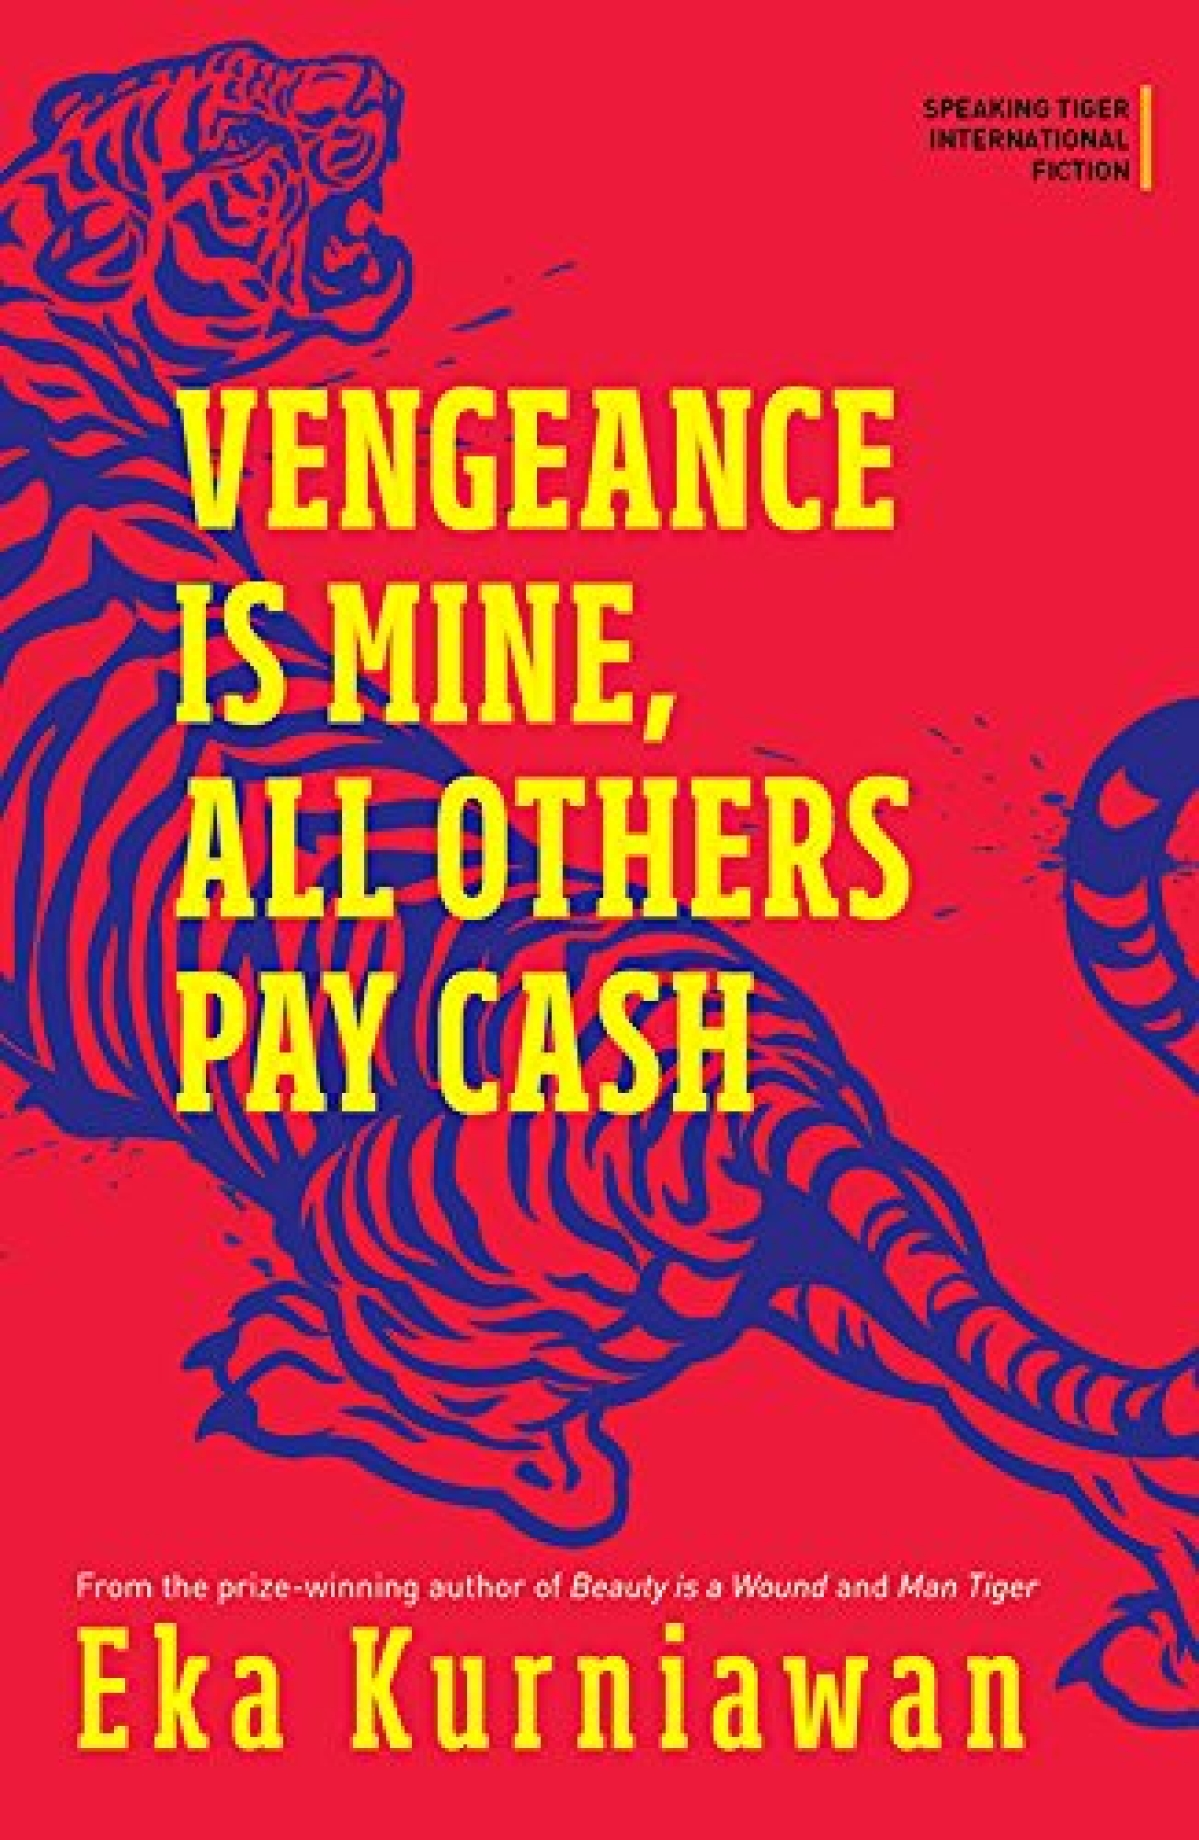 Vengeance Is Mine, All Others Pay Cash: Review